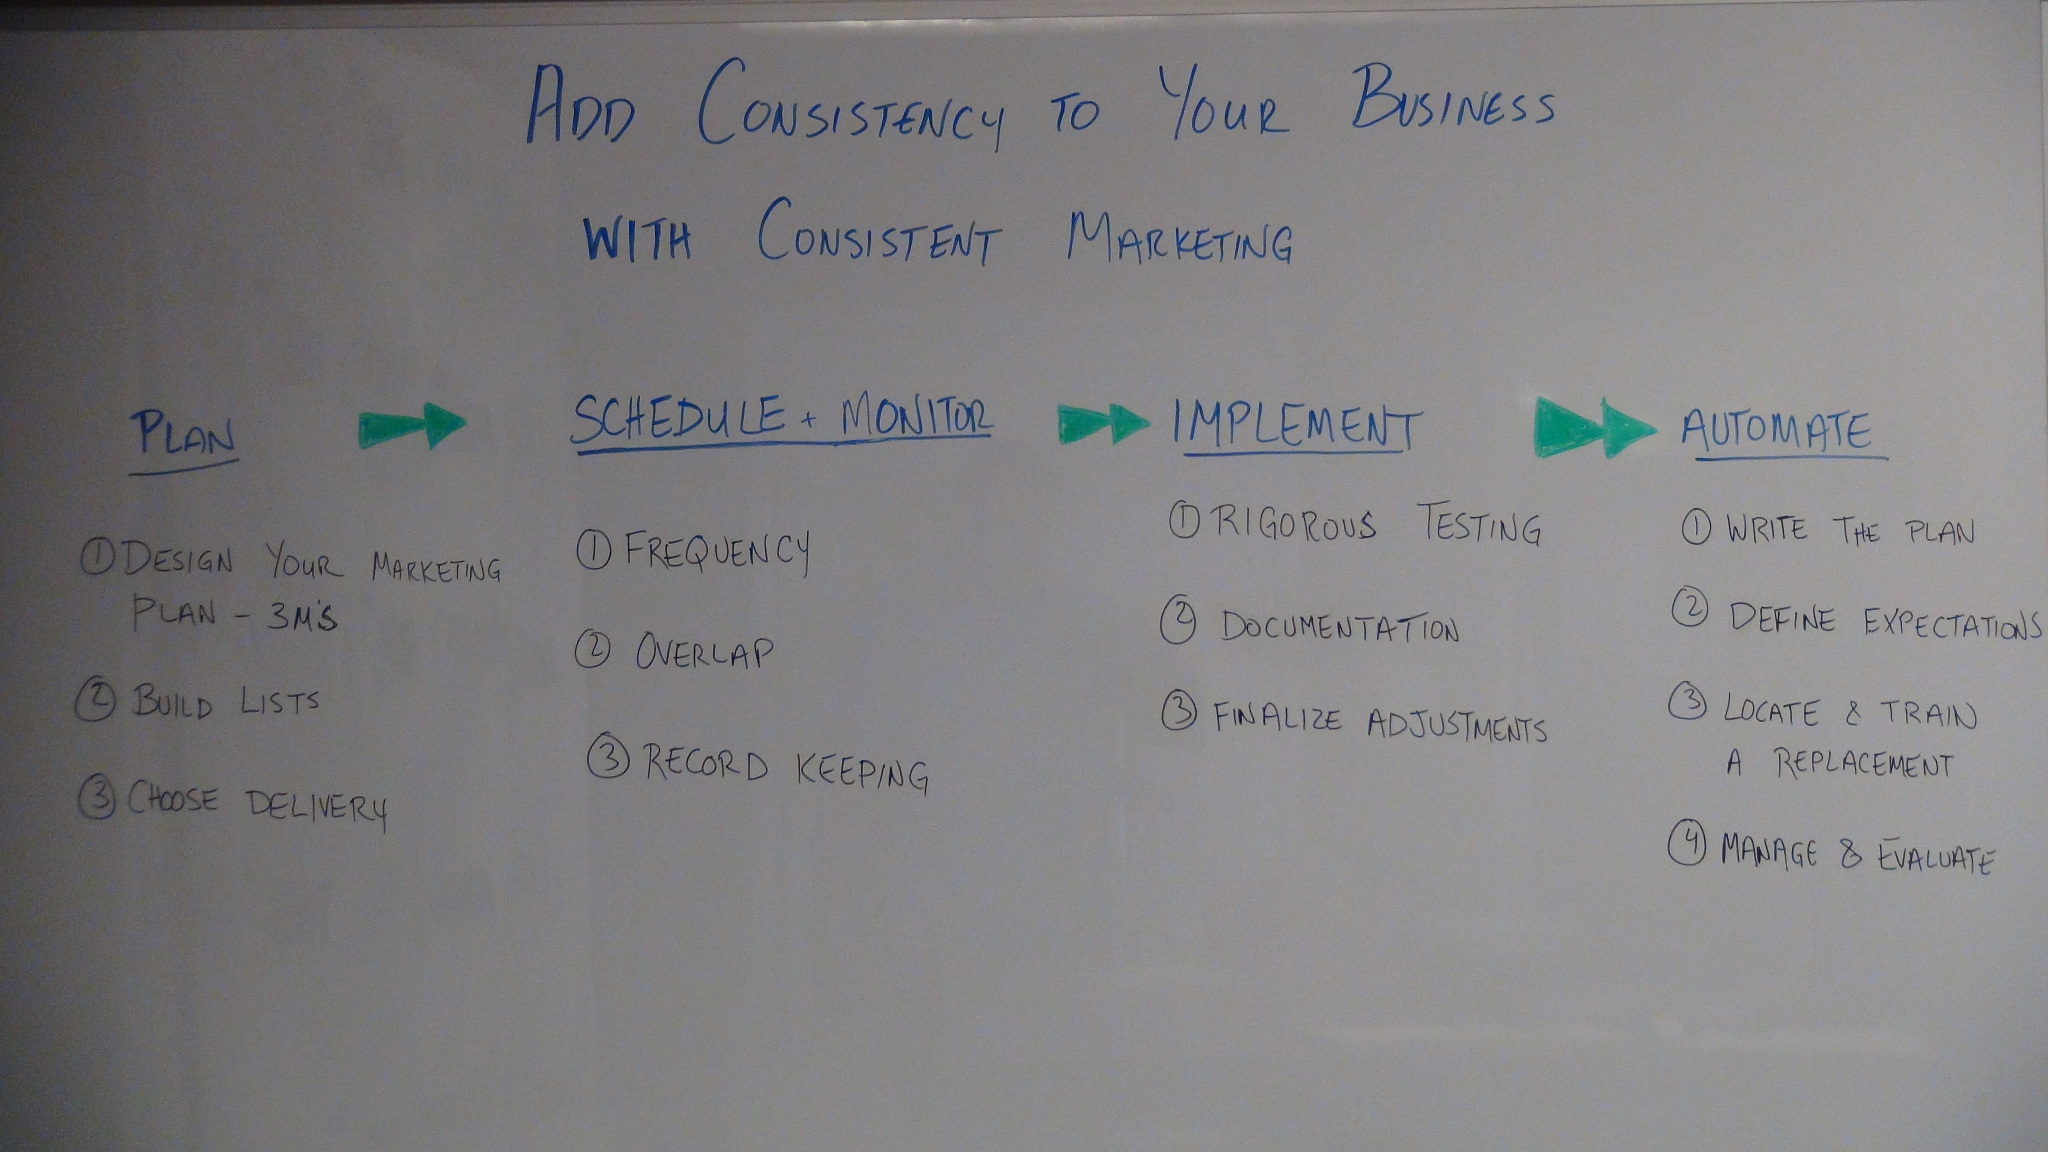 Add Consistency to Your Business With Consistent Marketing